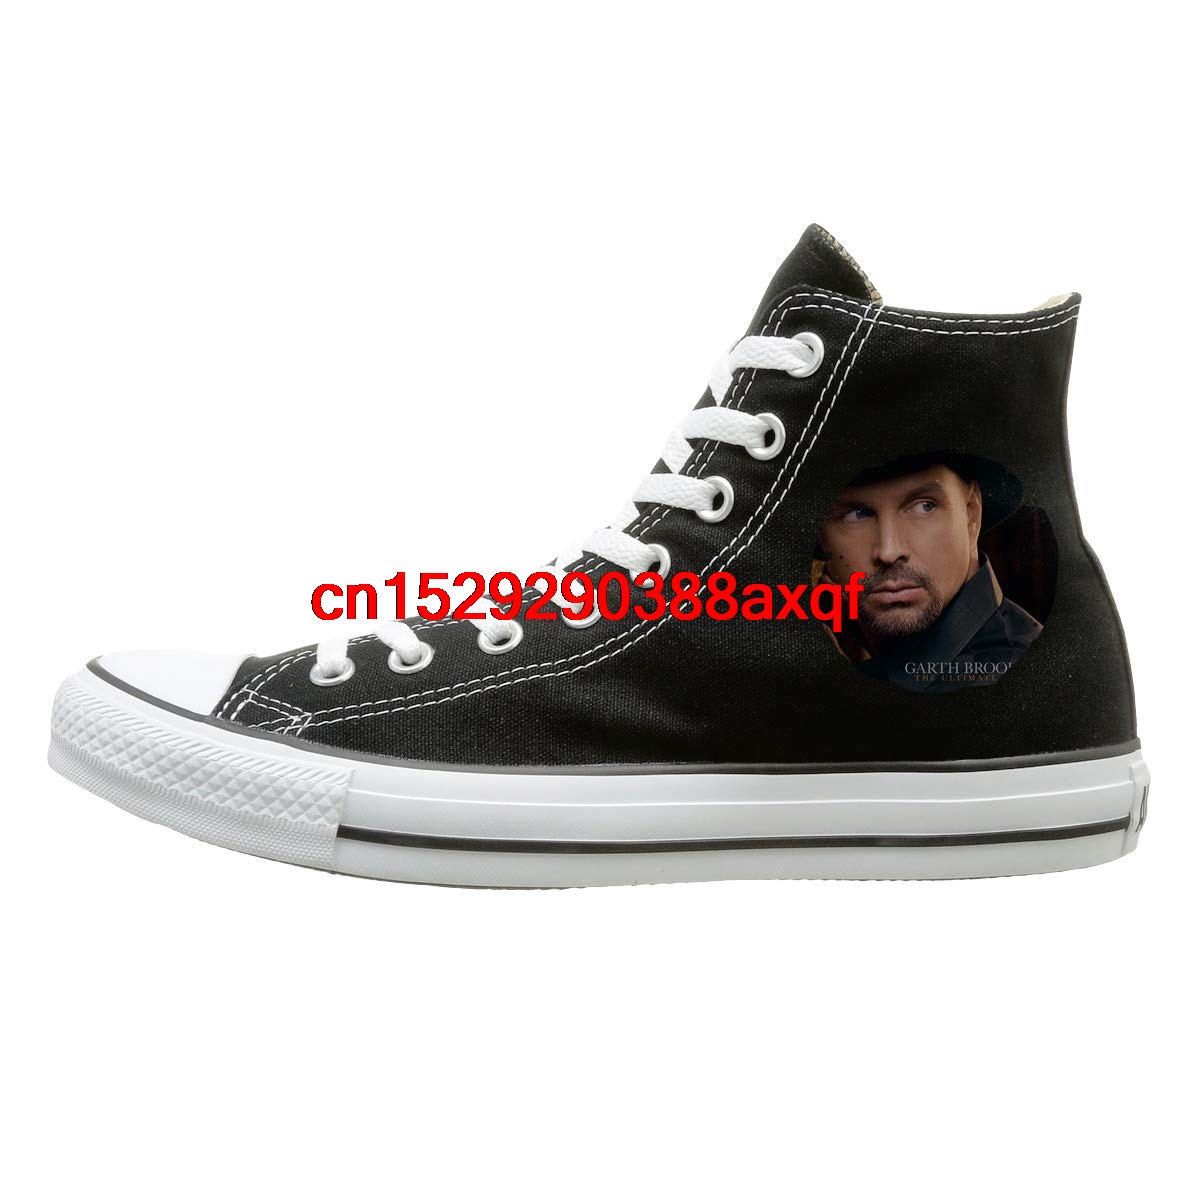 authentic website for discount skate shoes Unisex Garth Brooks The Ultimate Hits High top Sneakers Canvas ...